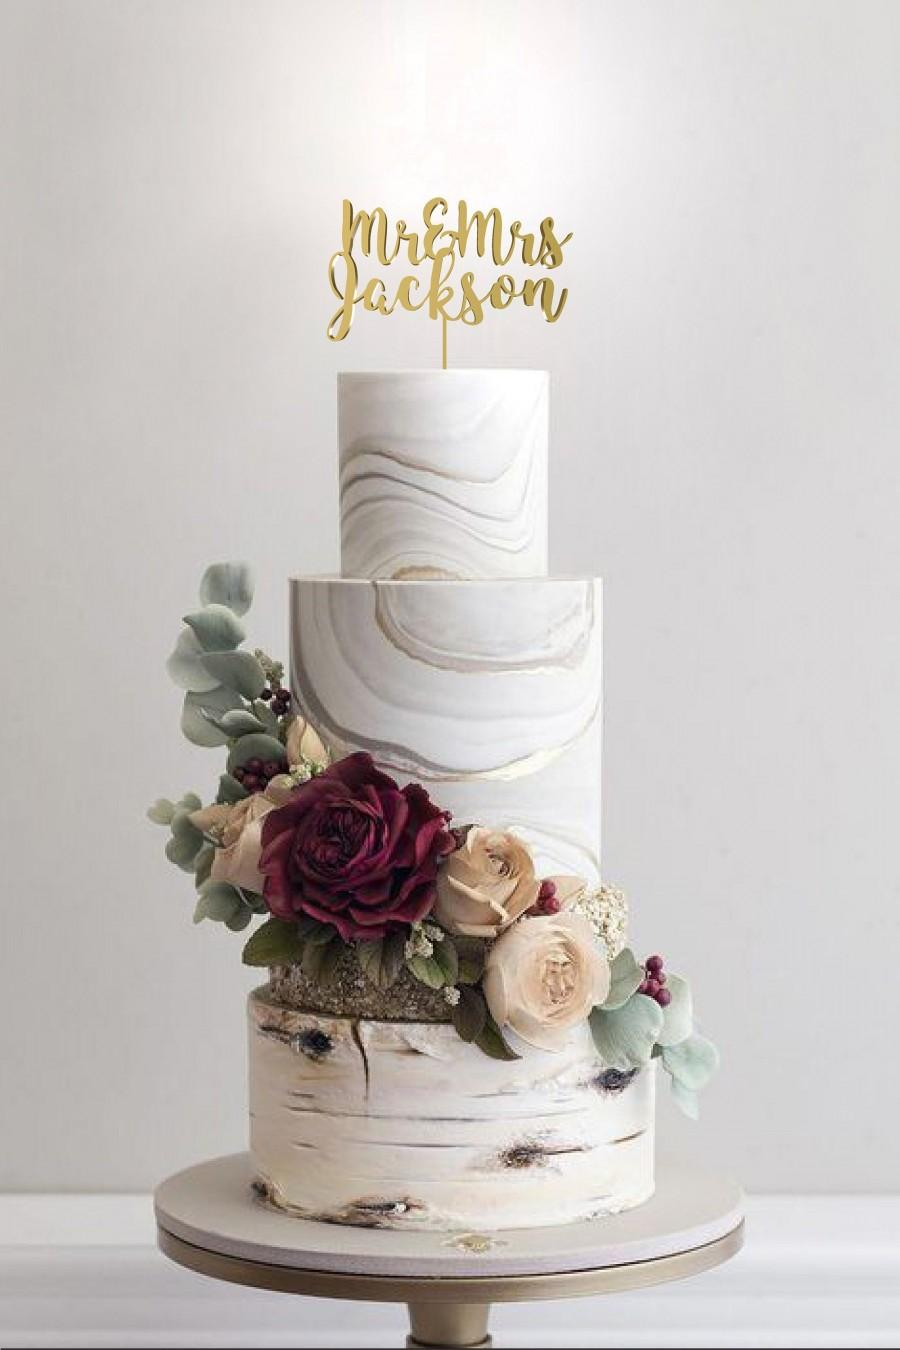 Mariage - Mr and Mrs Wedding Cake Topper by Rawkrft - Customize Your Own - Designed and Made in Los Angeles California - Ready to ship in 1-2 Business